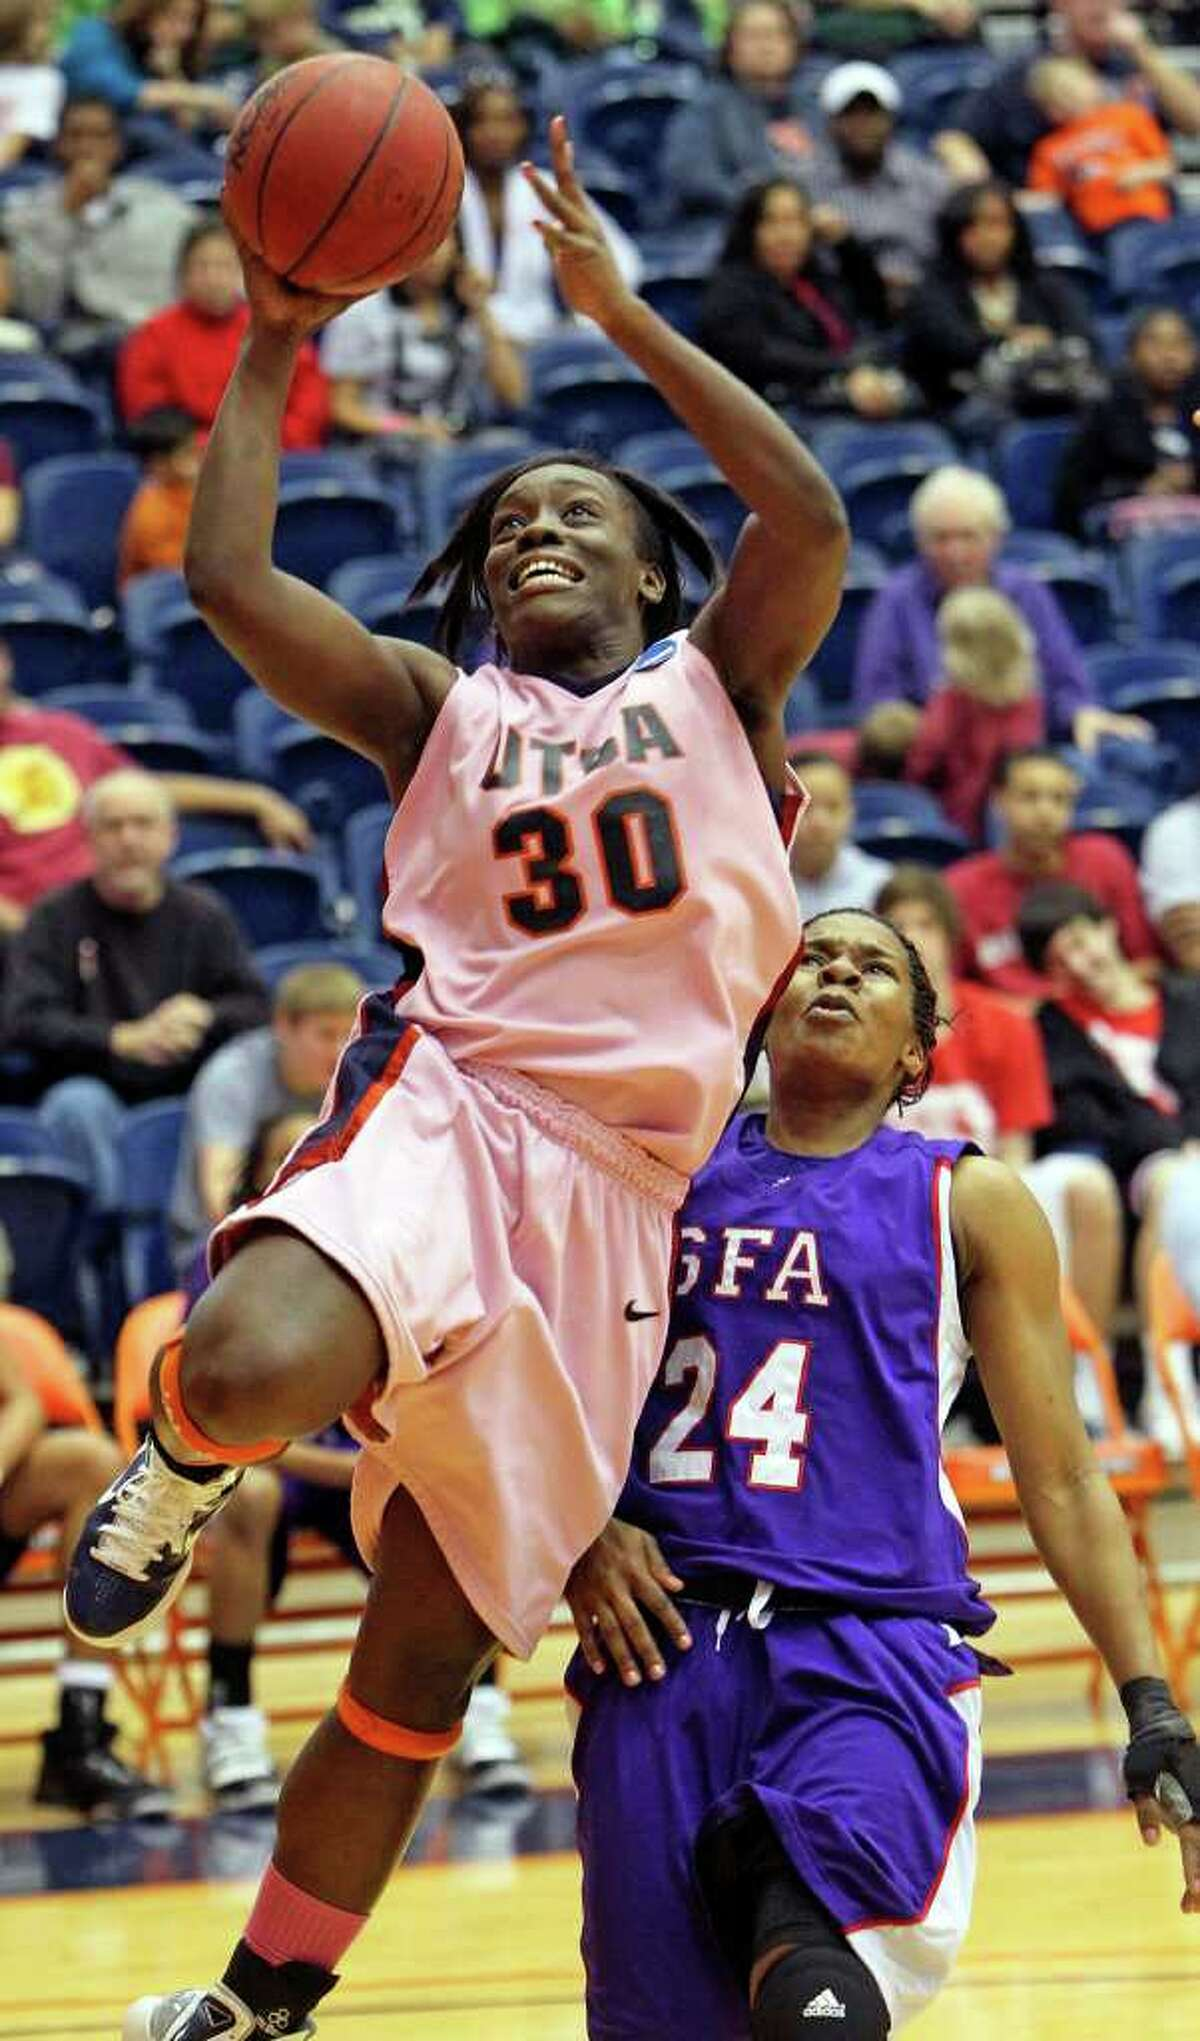 SPORTS Roadrunner forward Ijeoma Waturuocha gets free to the hoop against Decreasha Goodner as the UTSA women play Stephen F. Austin at the UTSA Convocation Center on February 12, 2011. Tom Reel/Staff